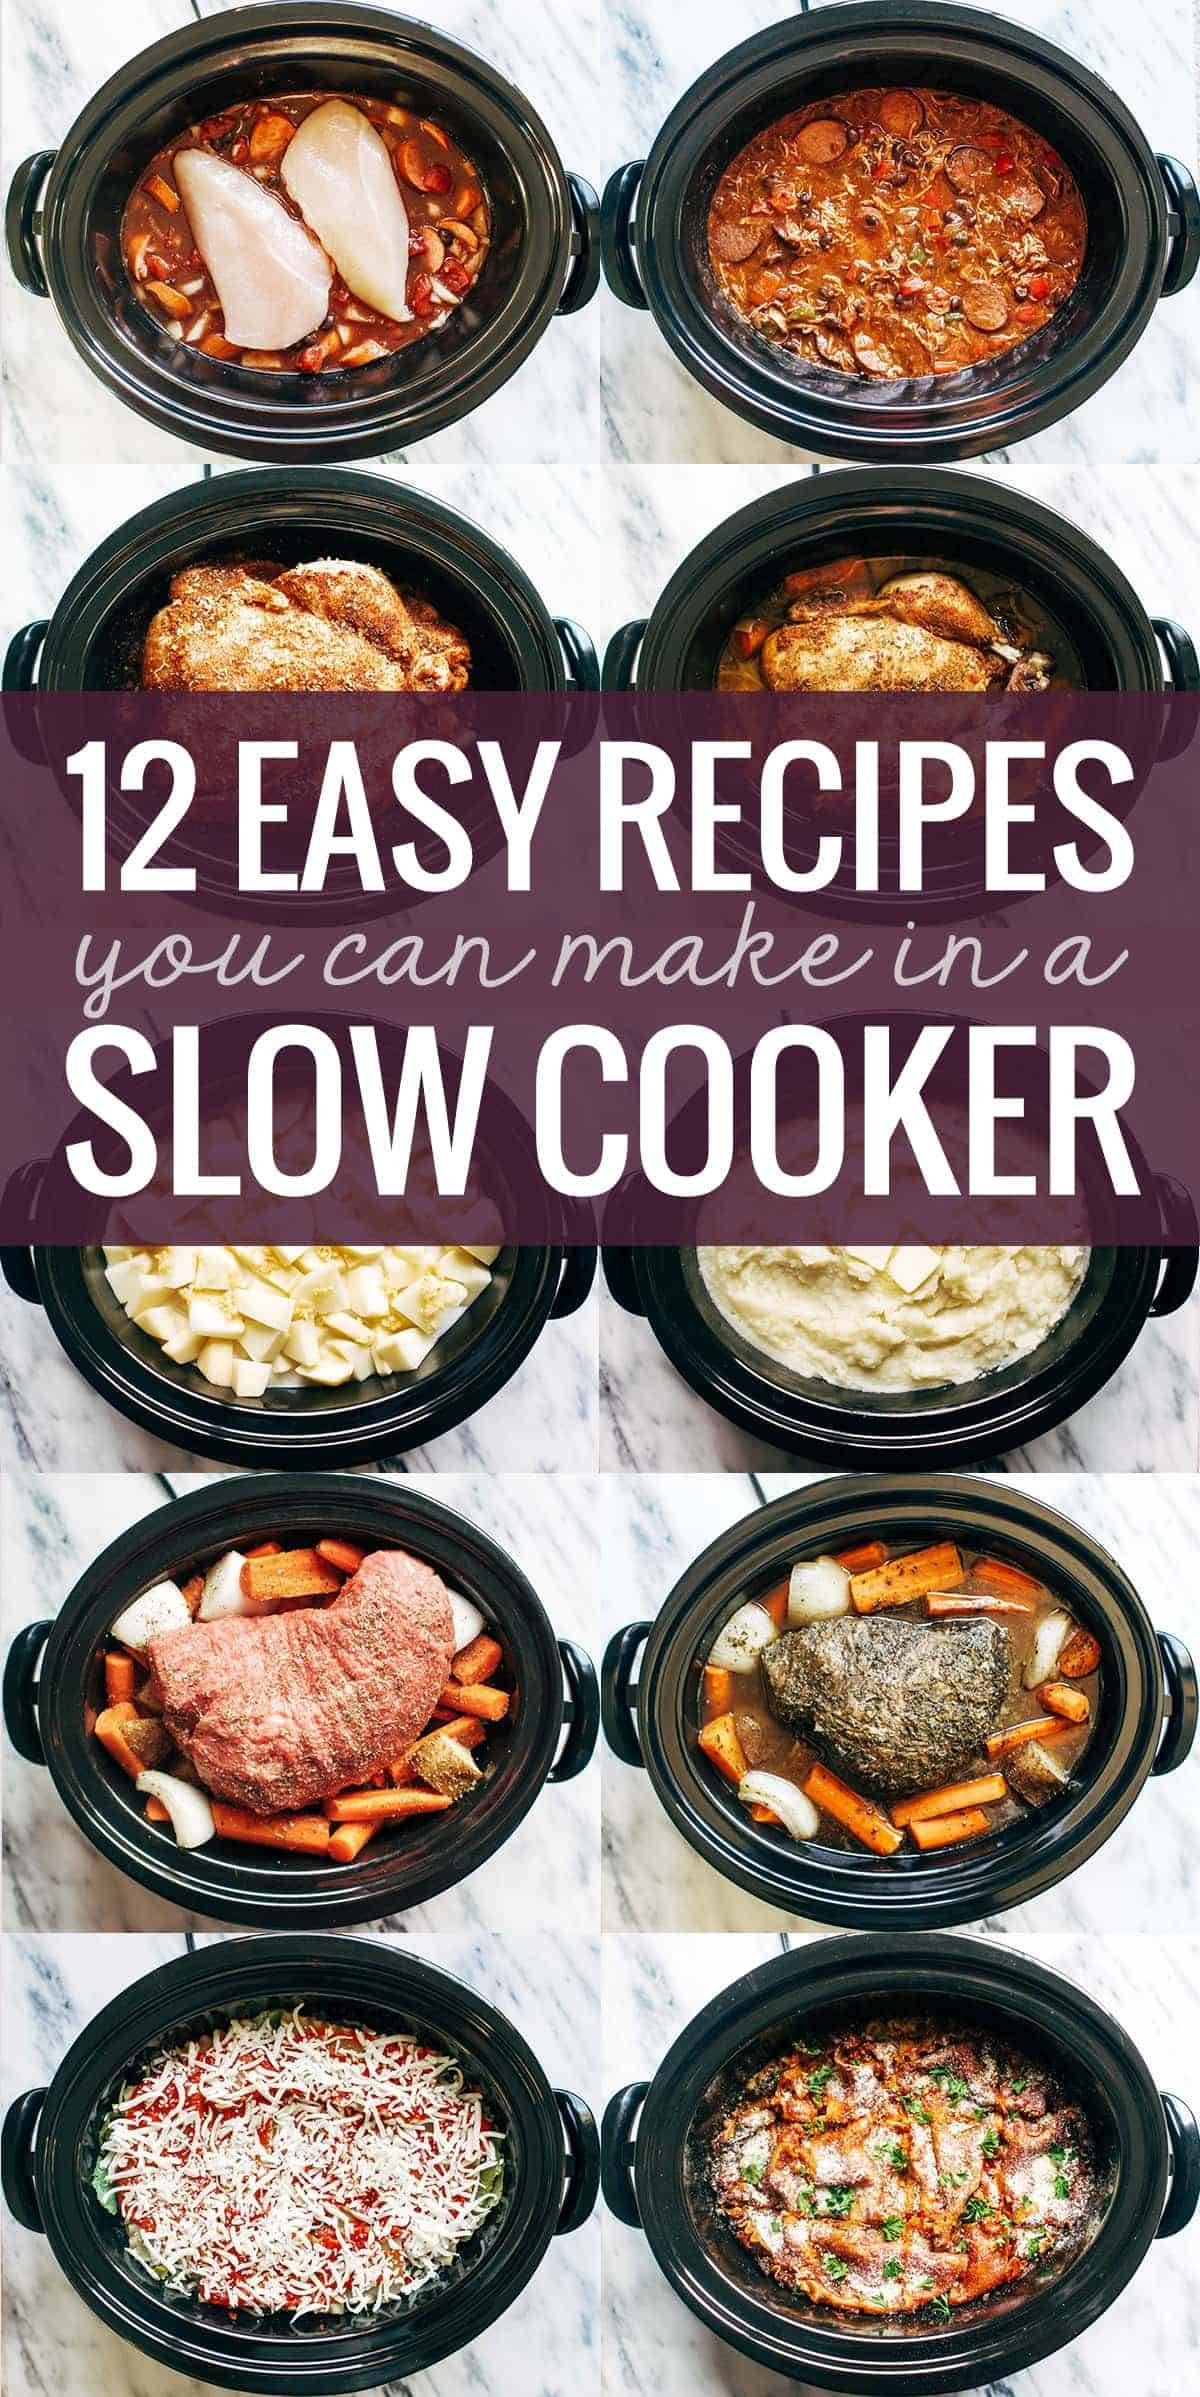 12 Easy Recipes For The Slow Cooker, Like Mashed Potatoes, Lasagna, A Whole